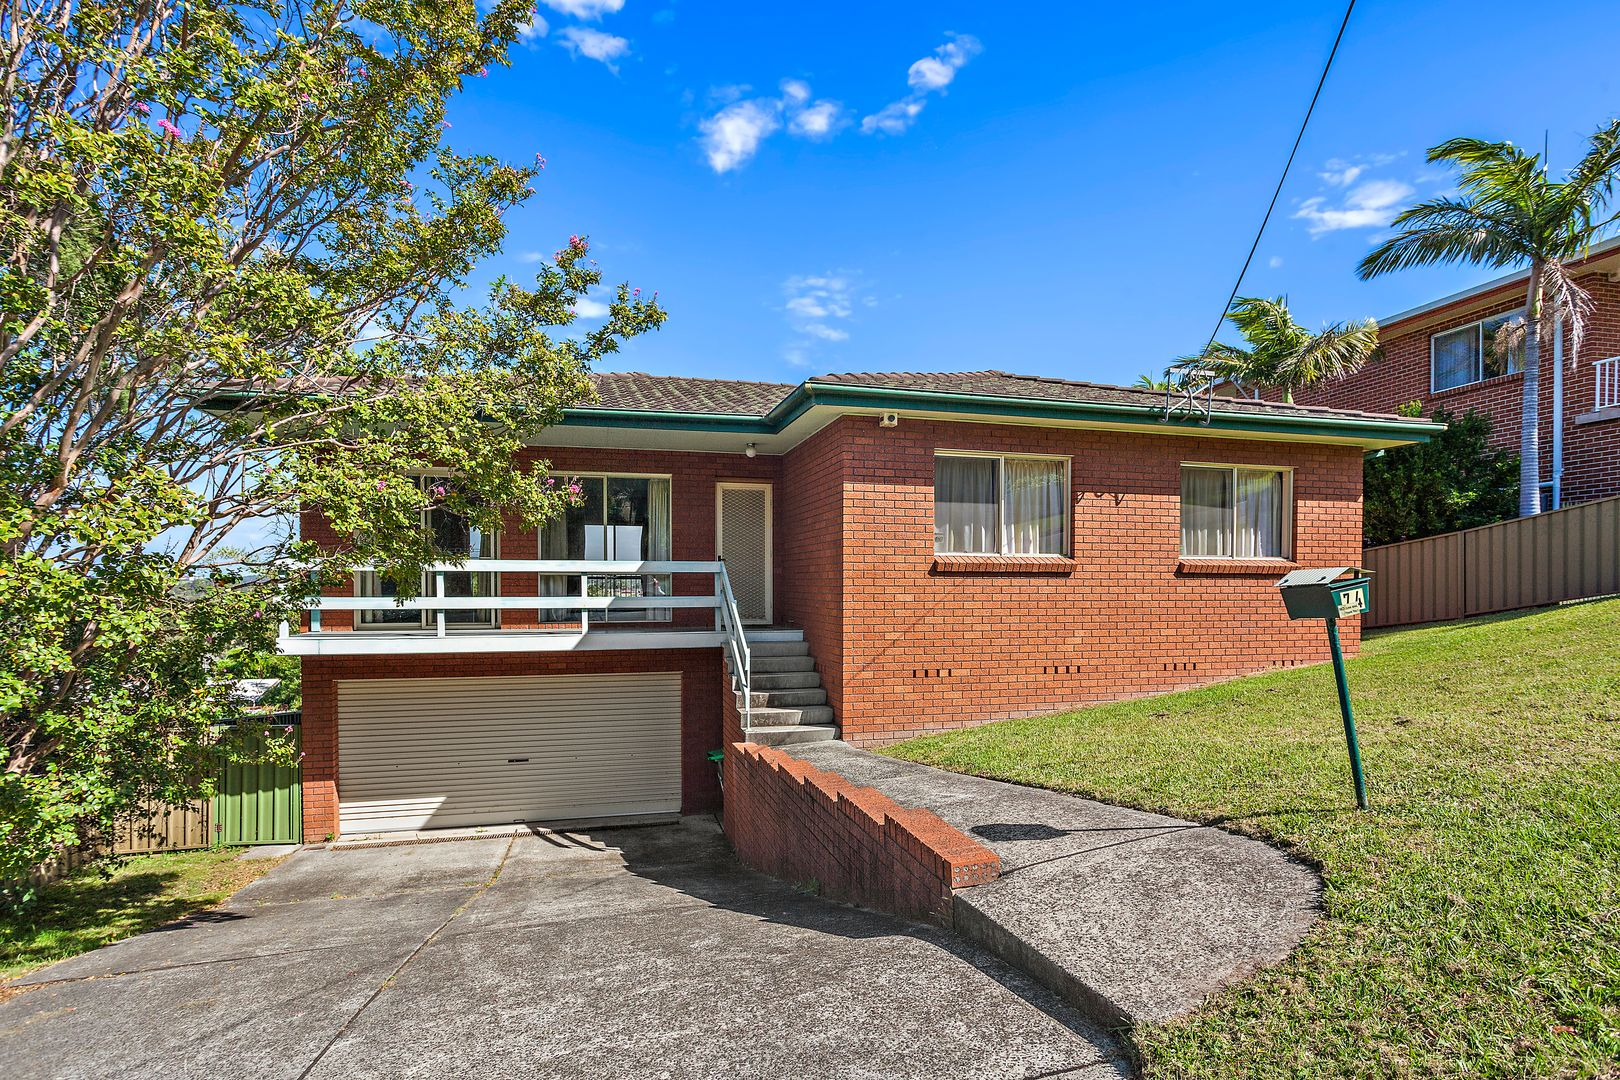 74 Outlook Drive, Figtree NSW 2525, Image 0